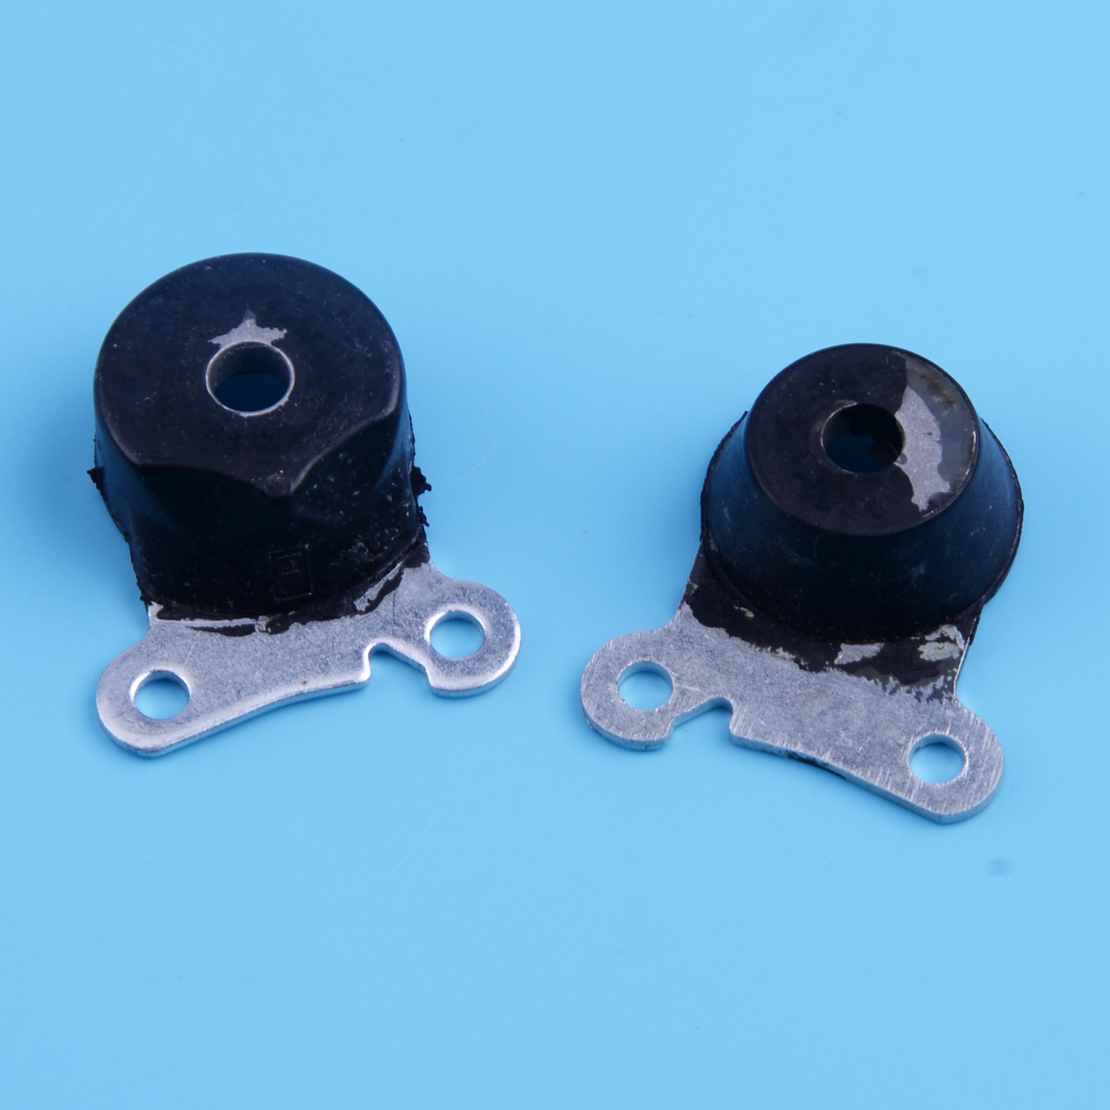 LETAOSK 2pcs Black AV Annular Buffer 1129 790 9900 Fit For Stihl MS200T 020T Chainsaw 1129 790 9902 3.7x3.3x1.2cm